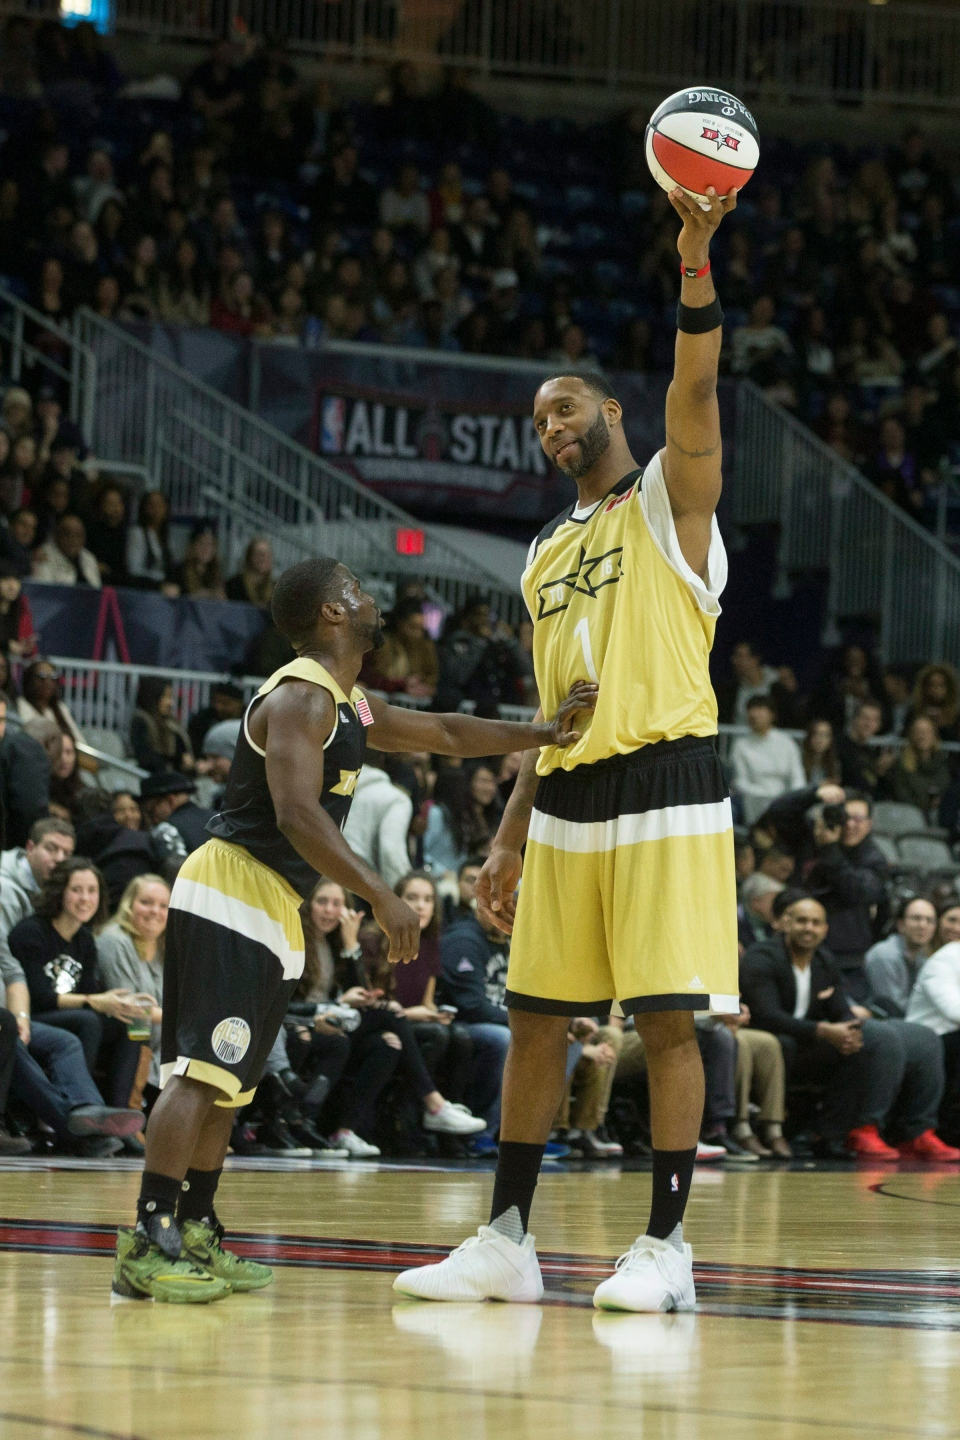 Team Canada's Tracy McGrady holds the ball out of the reach of Team USA's Kevin Hart during the NBA celebrity all-star game in Toronto on Friday, Feb. 12, 2016. (Chris Young / THE CANADIAN PRESS)